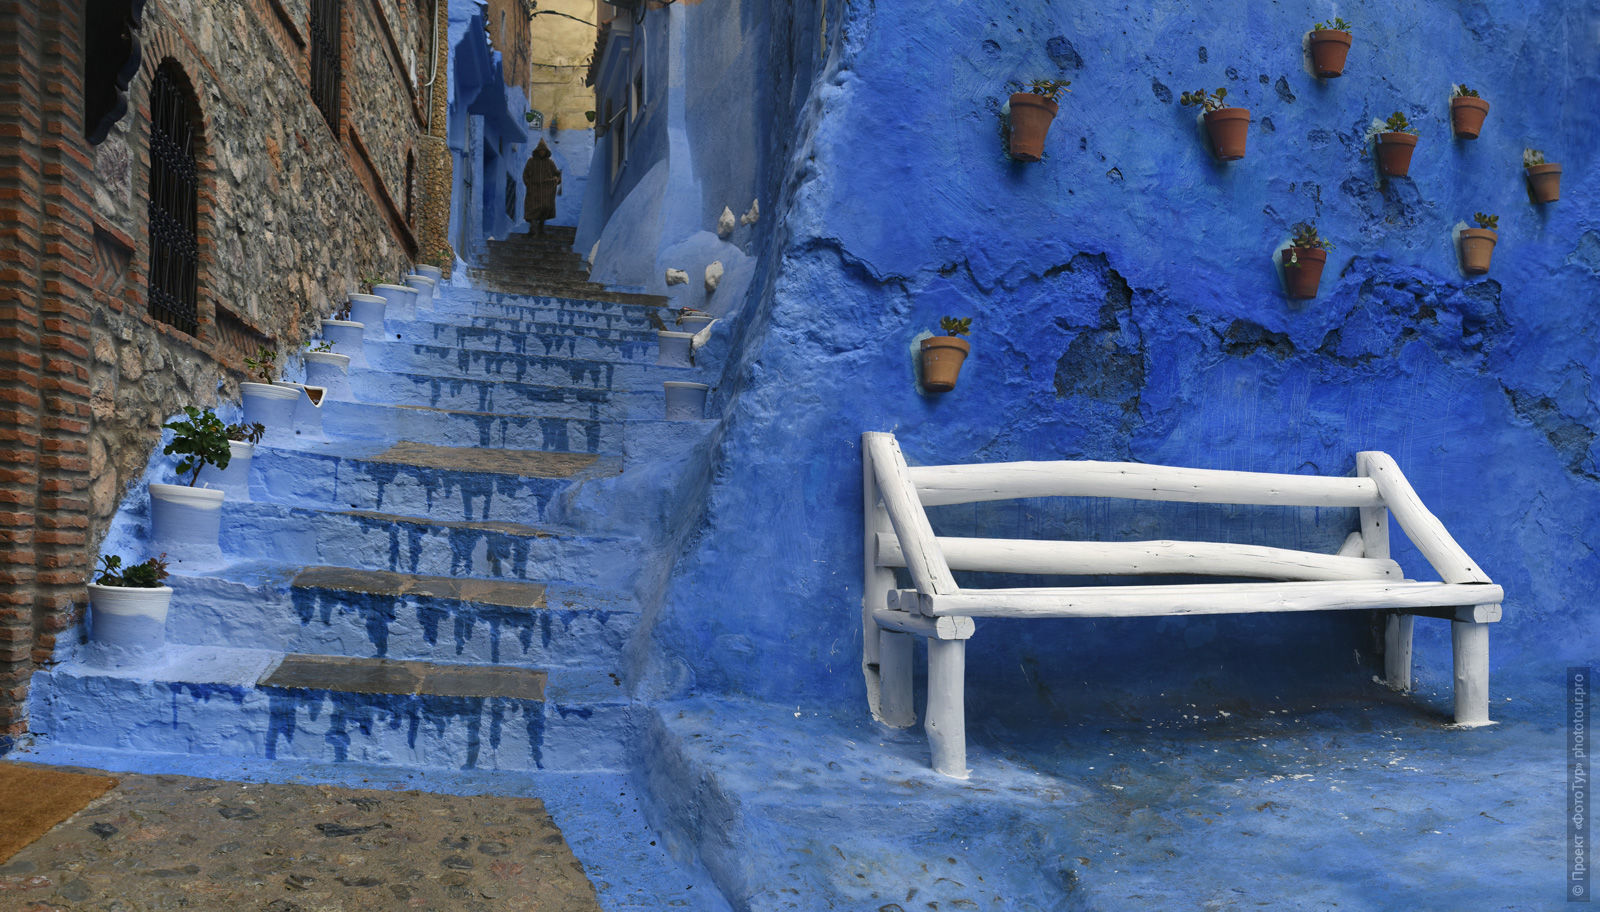 White bench in the blue medina of Chefchaouen, Morocco, photo tour of Morocco, October 2018.